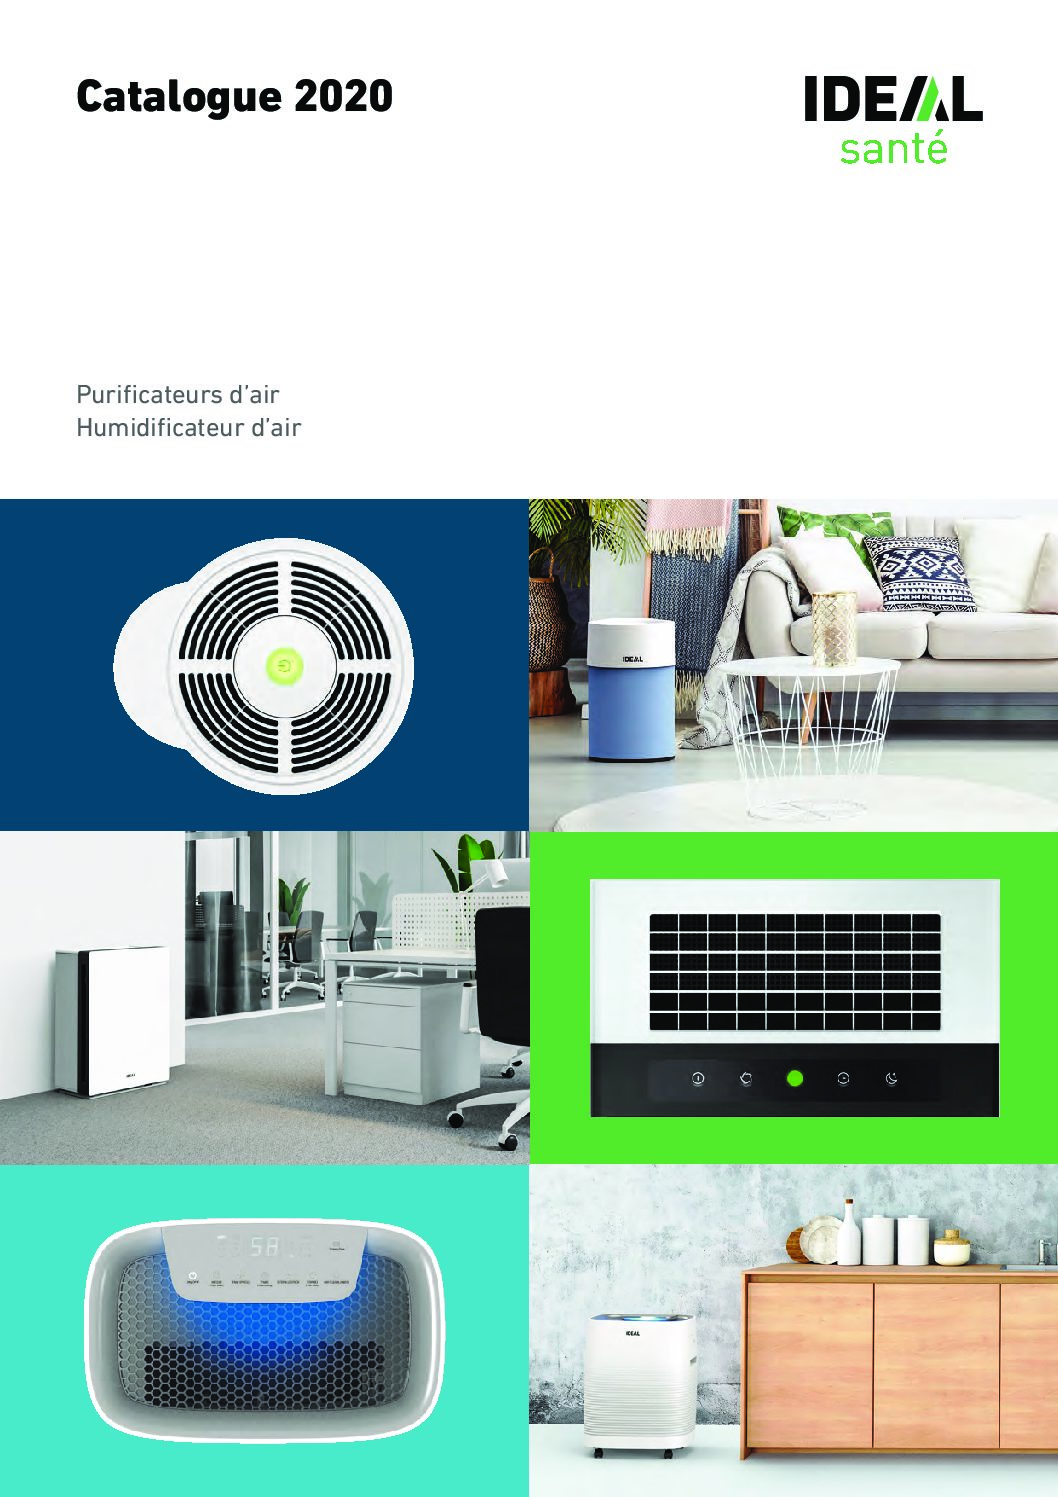 Purificateurs d'air IDEAL SANTÉ Catalogue 2020 – Mobilier de Bureau Alençon